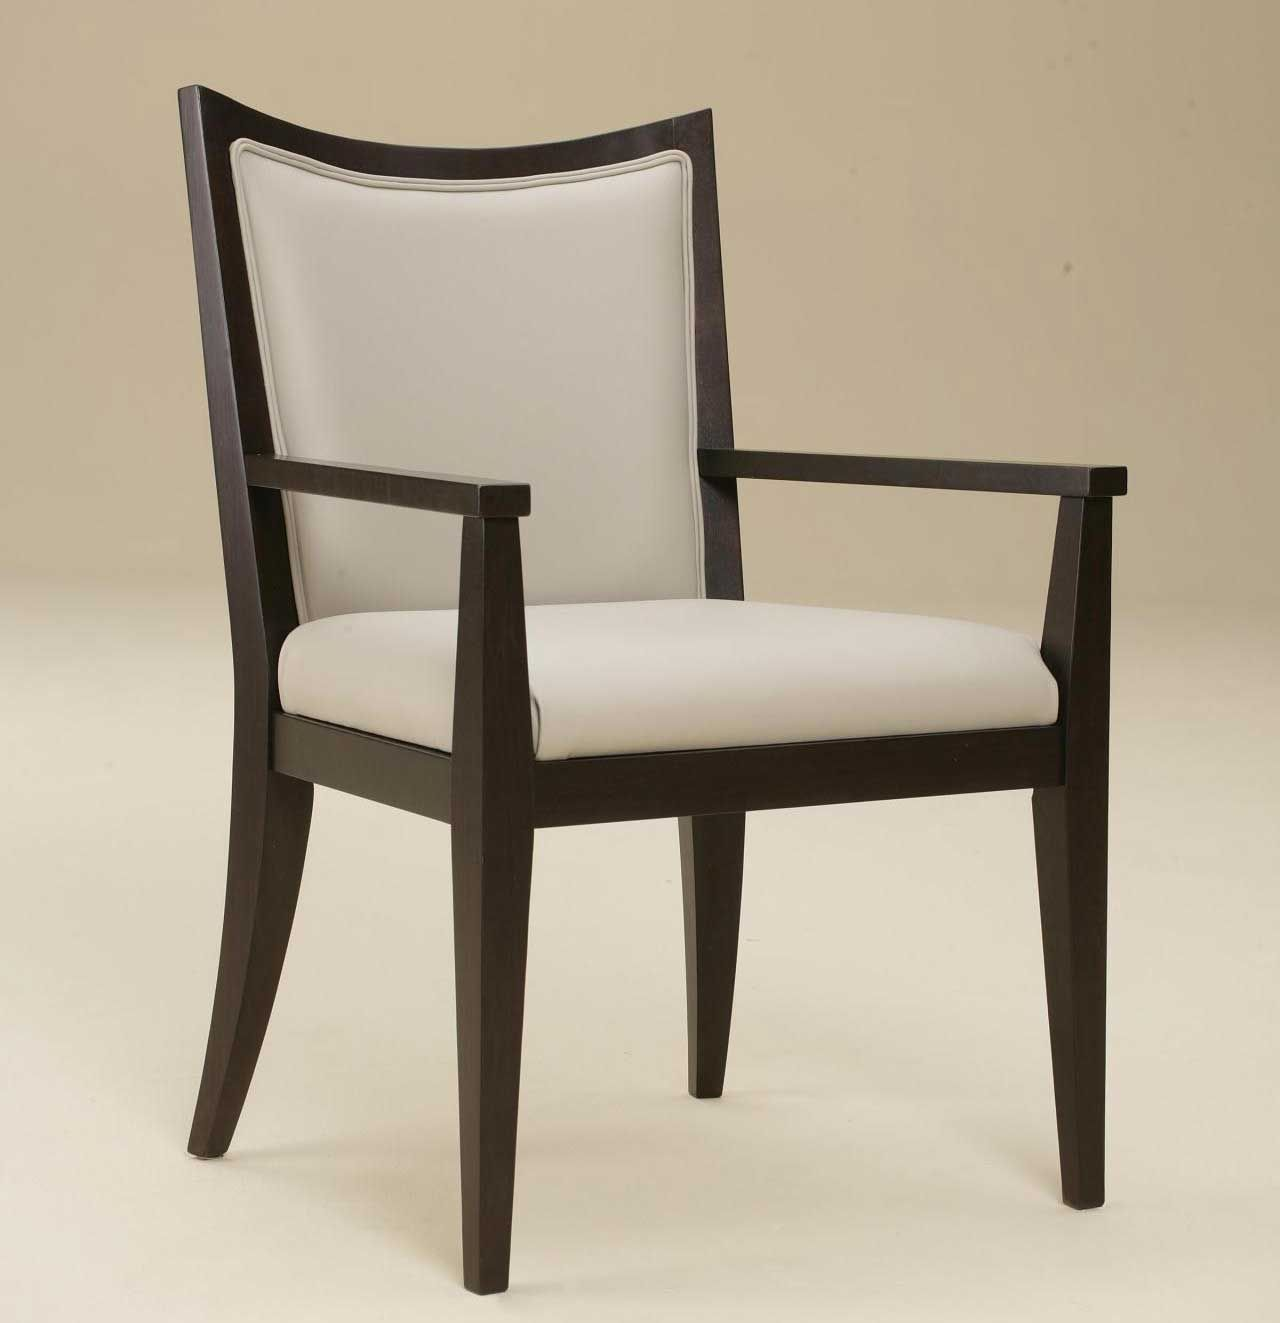 Decorative chairs for bedroom - Beautiful Accent Chairs For Bedroom Furniture Lounging Bedrooms Lounge Chair